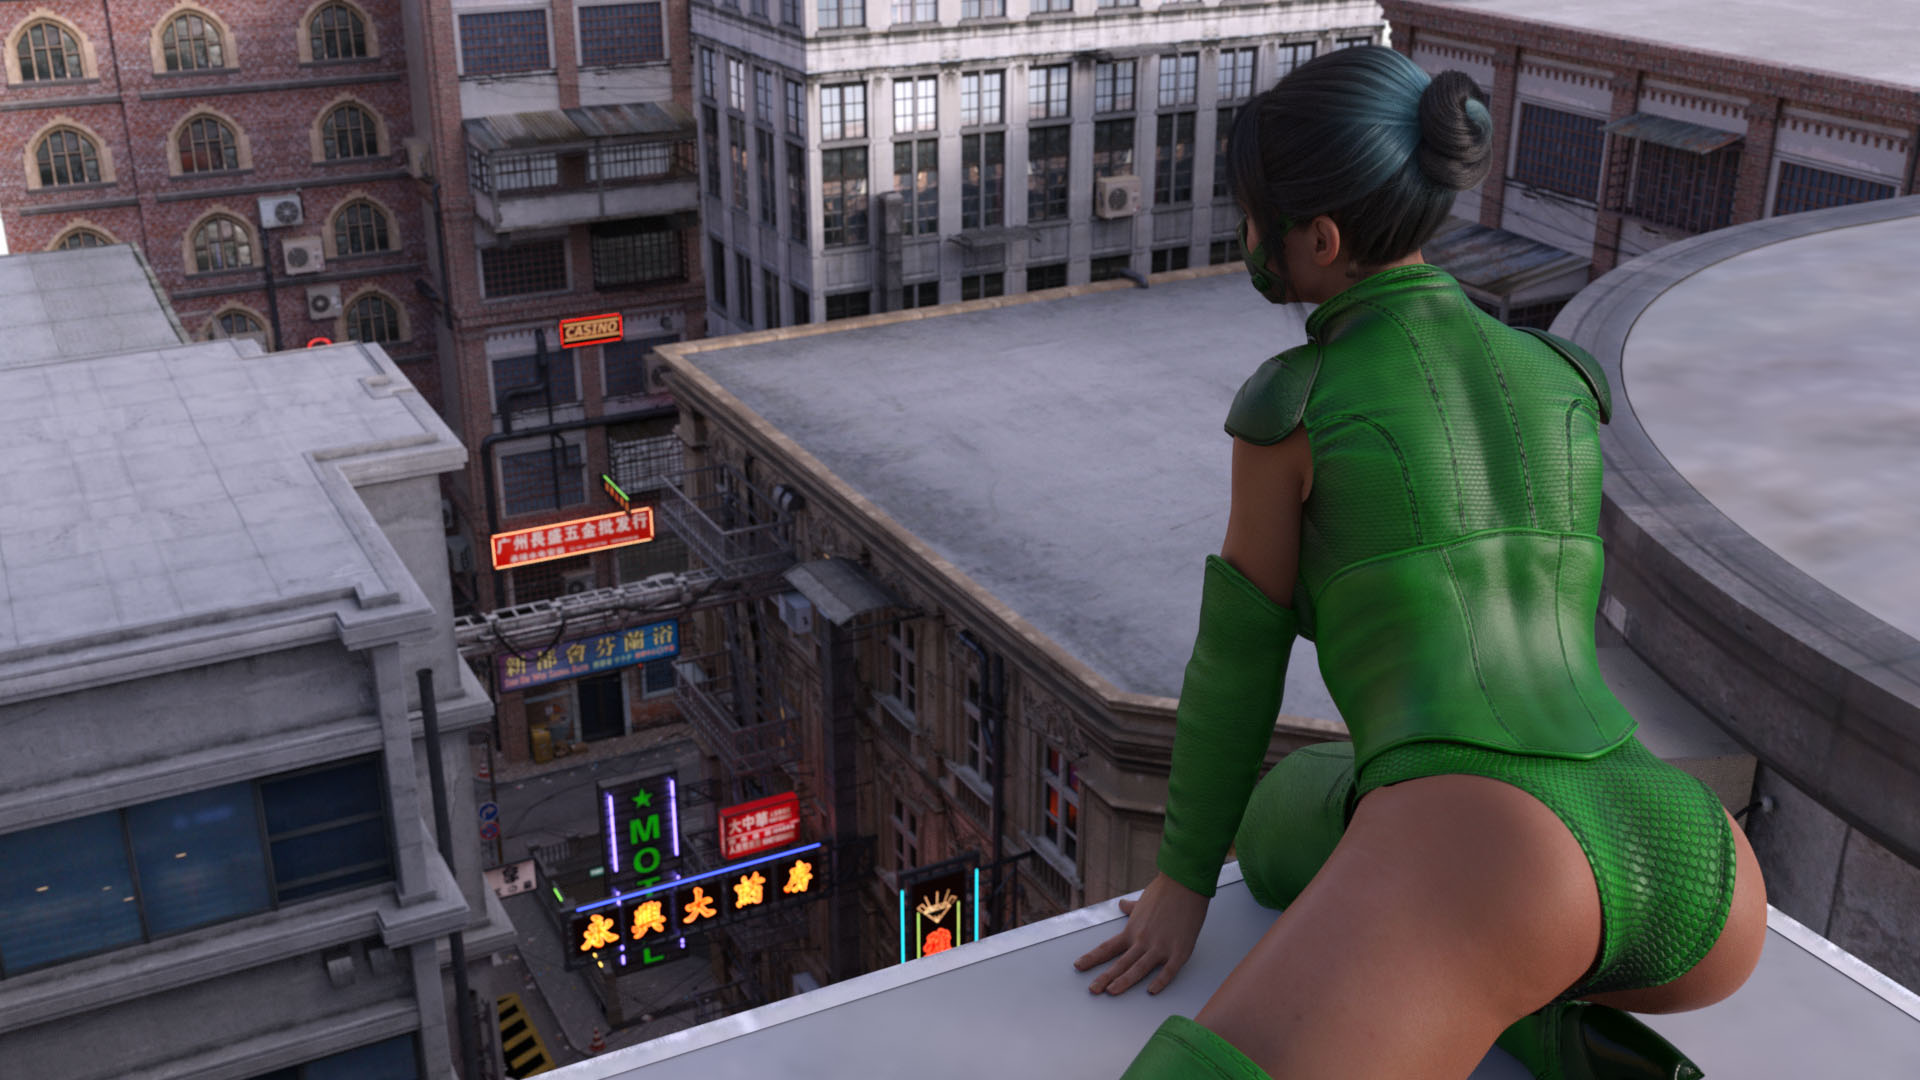 Rpgm Completed Masked Superheroine The Green Shadow Rachel Combin Ation F95zone